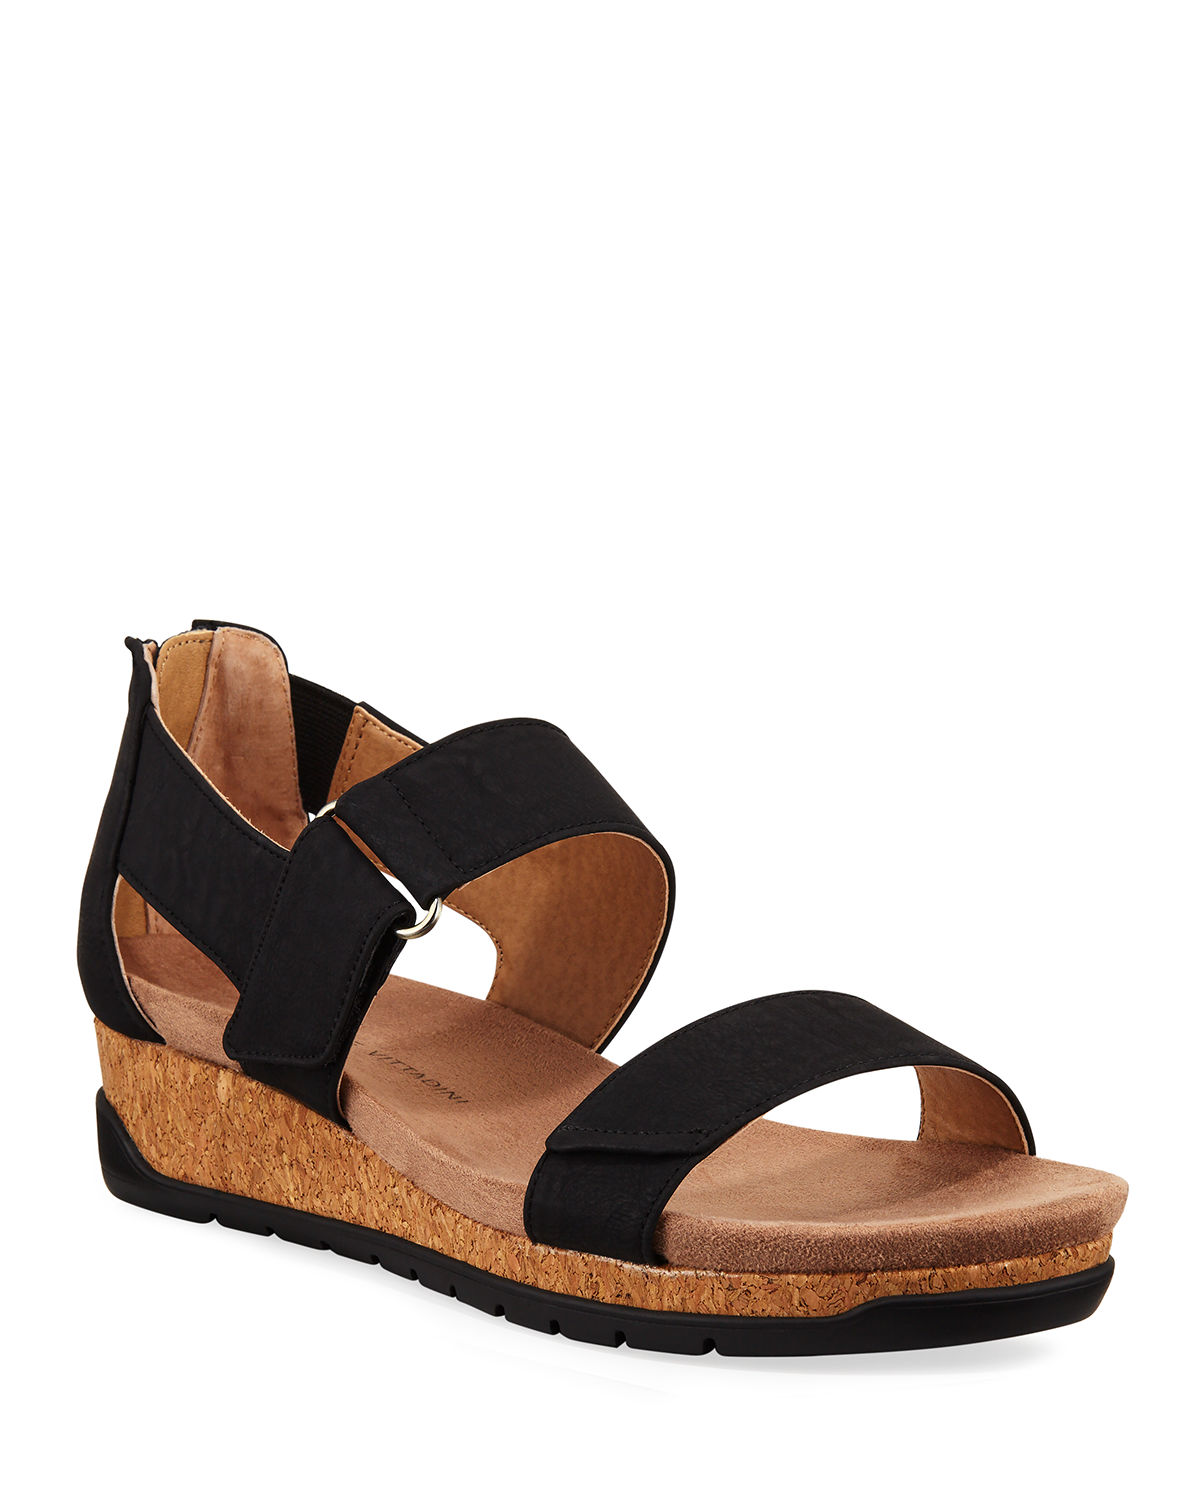 Adrienne Vittadini TAYTUM CORK DEMI-WEDGE SANDALS